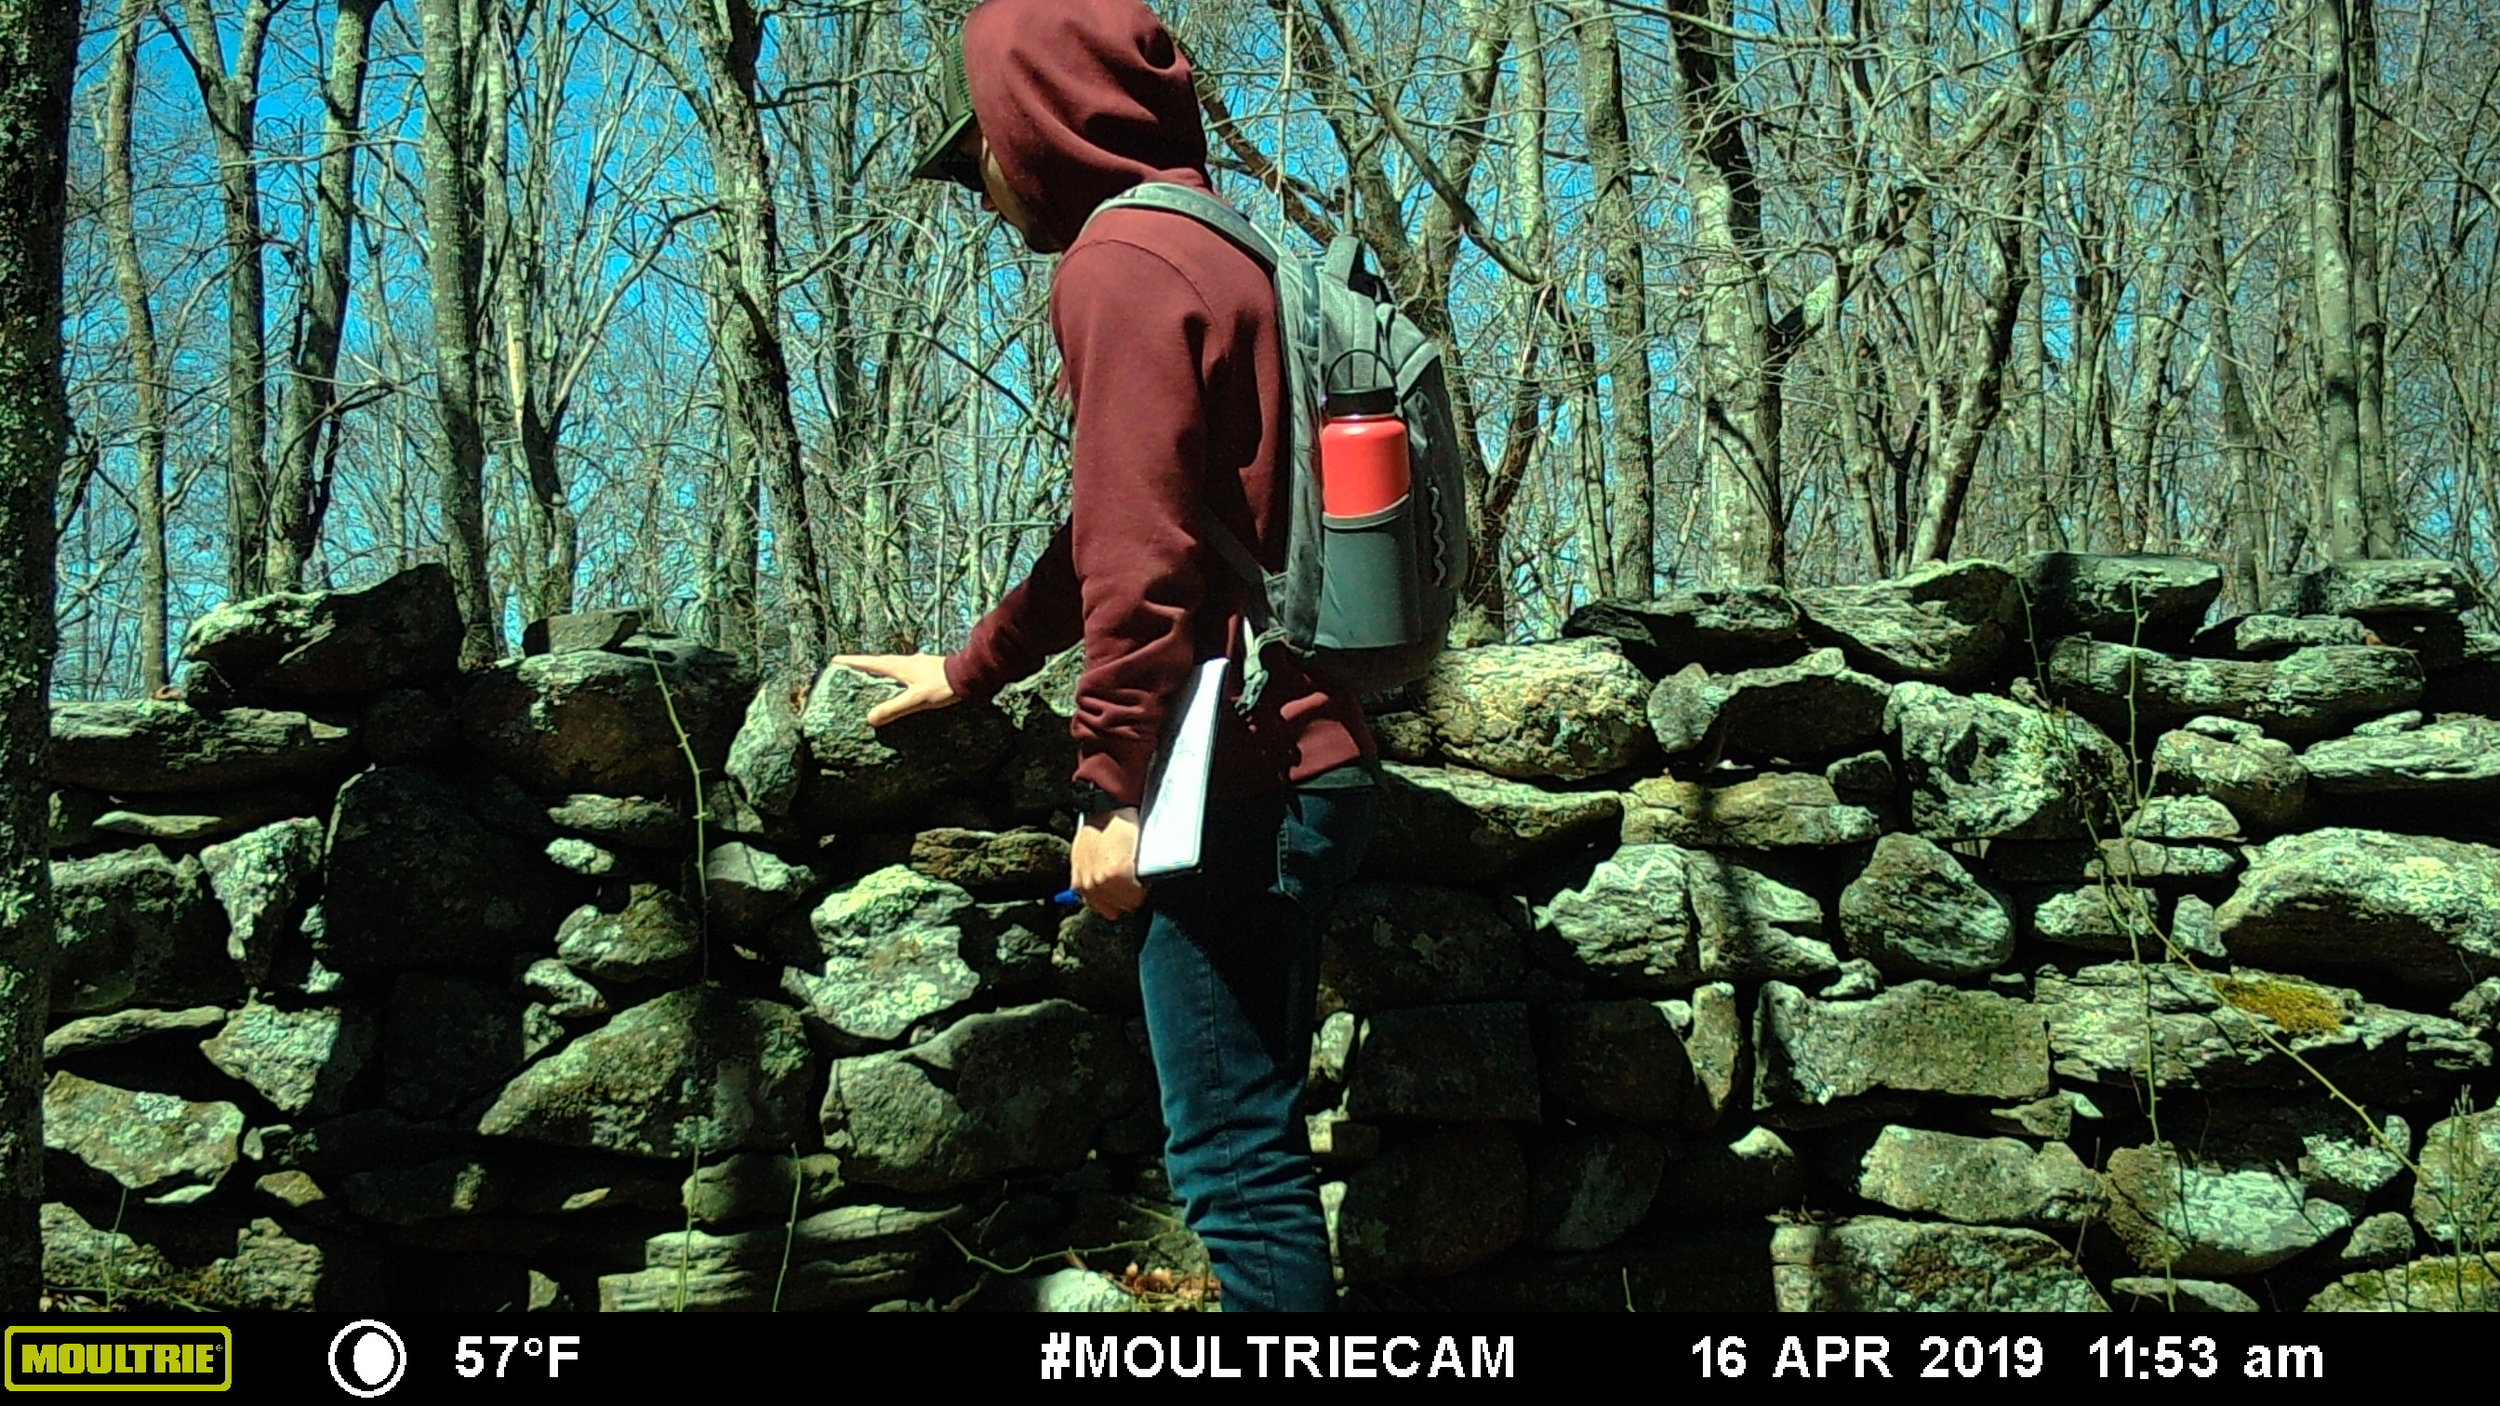 URI student admires the wall - Despite the study area's proximity to the URI campus, many typical New England forest species were detected: